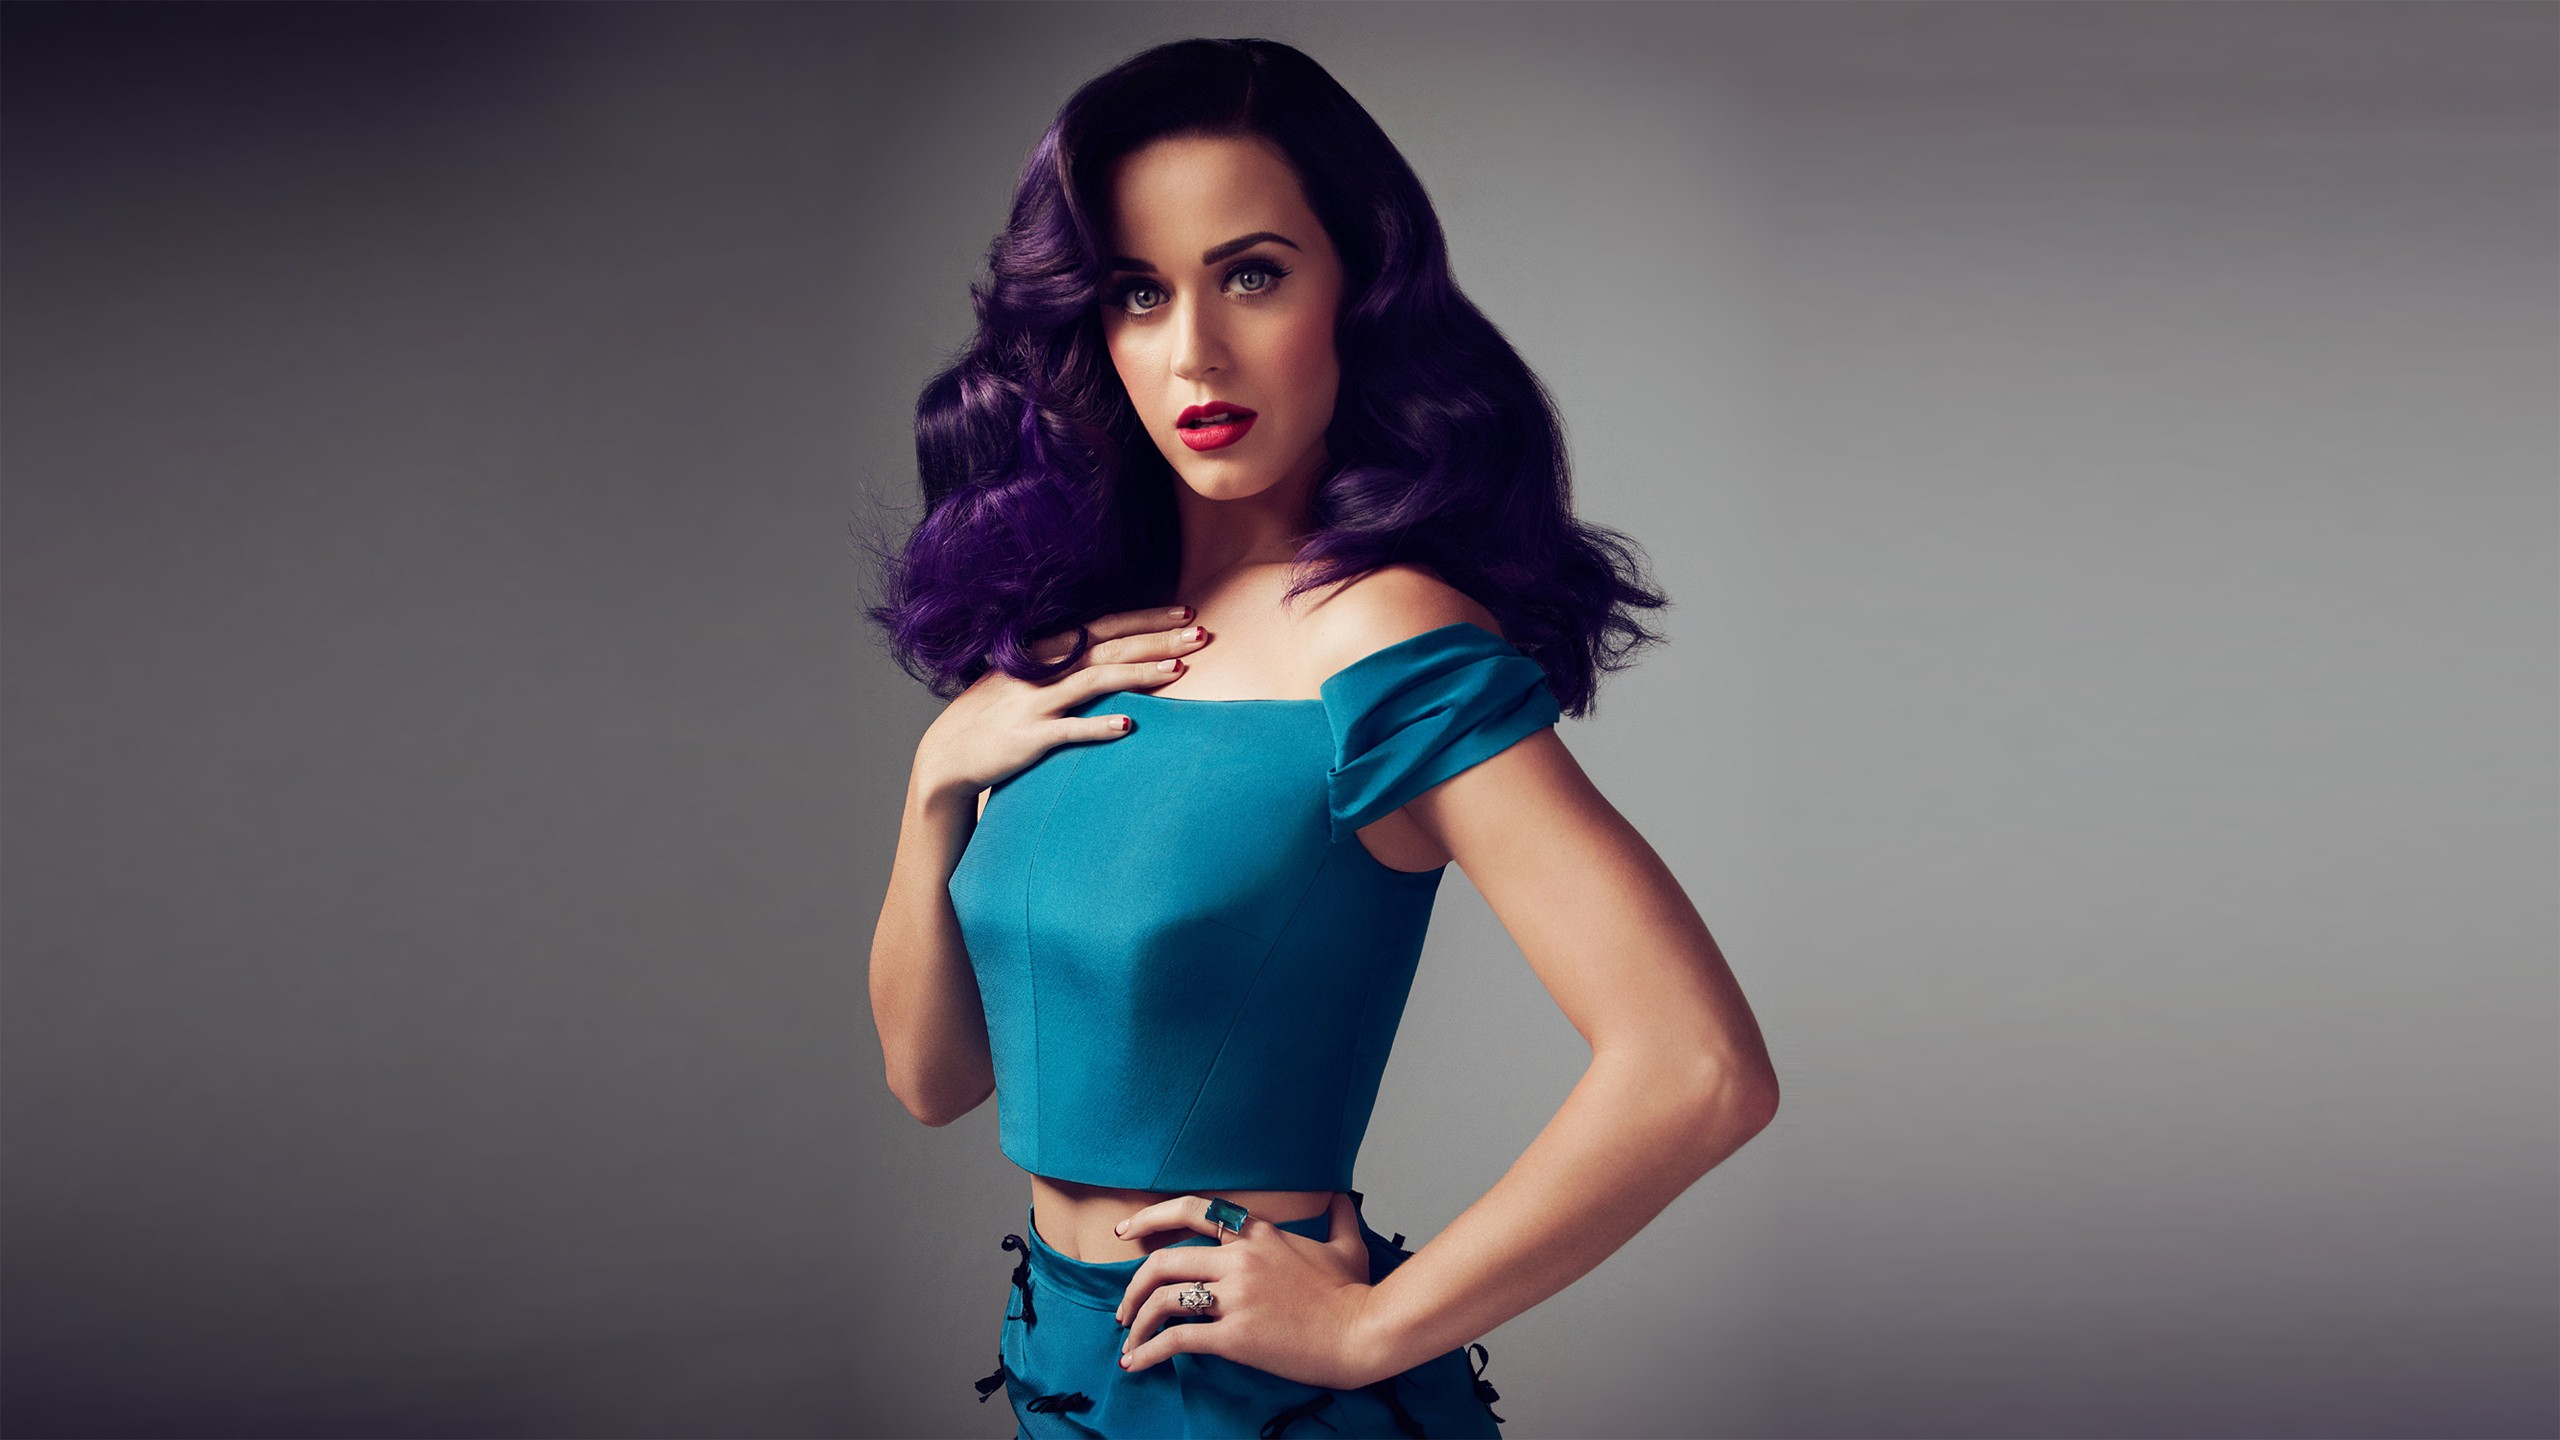 263 katy perry hd wallpapers | background images - wallpaper abyss